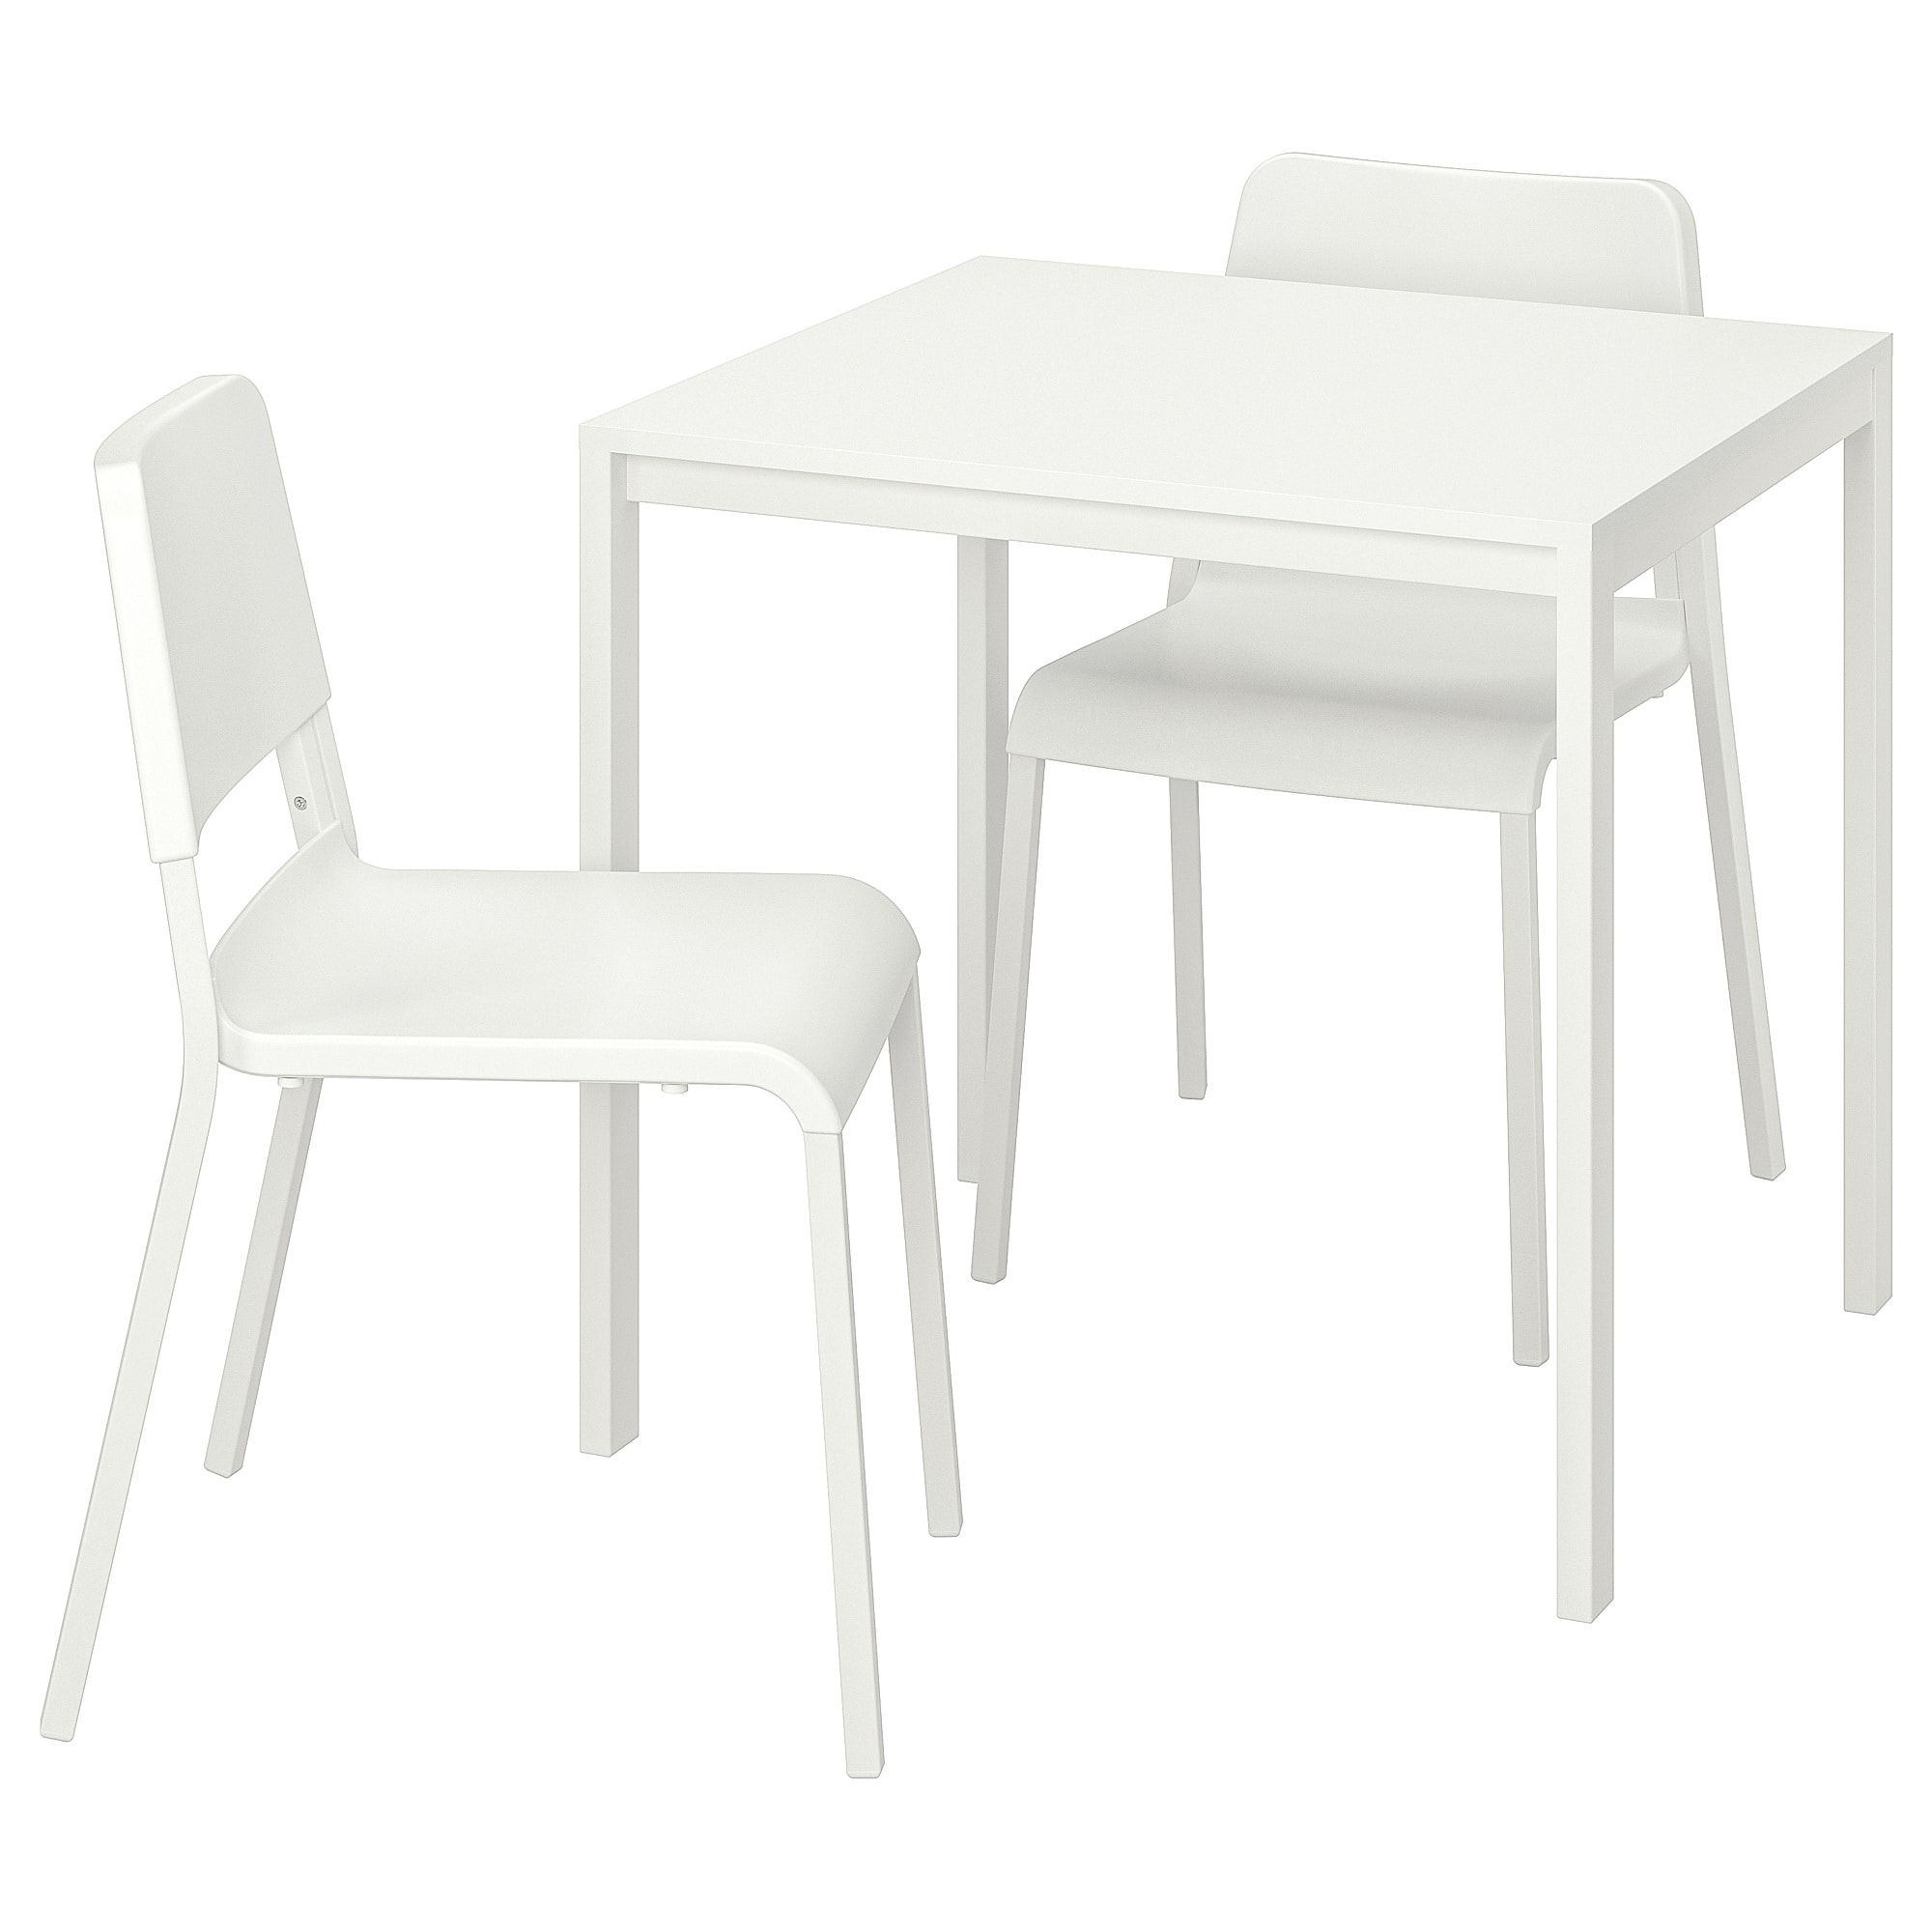 MELLTORP / TEODORES Table and 7 chairs, white, white - IKEA in